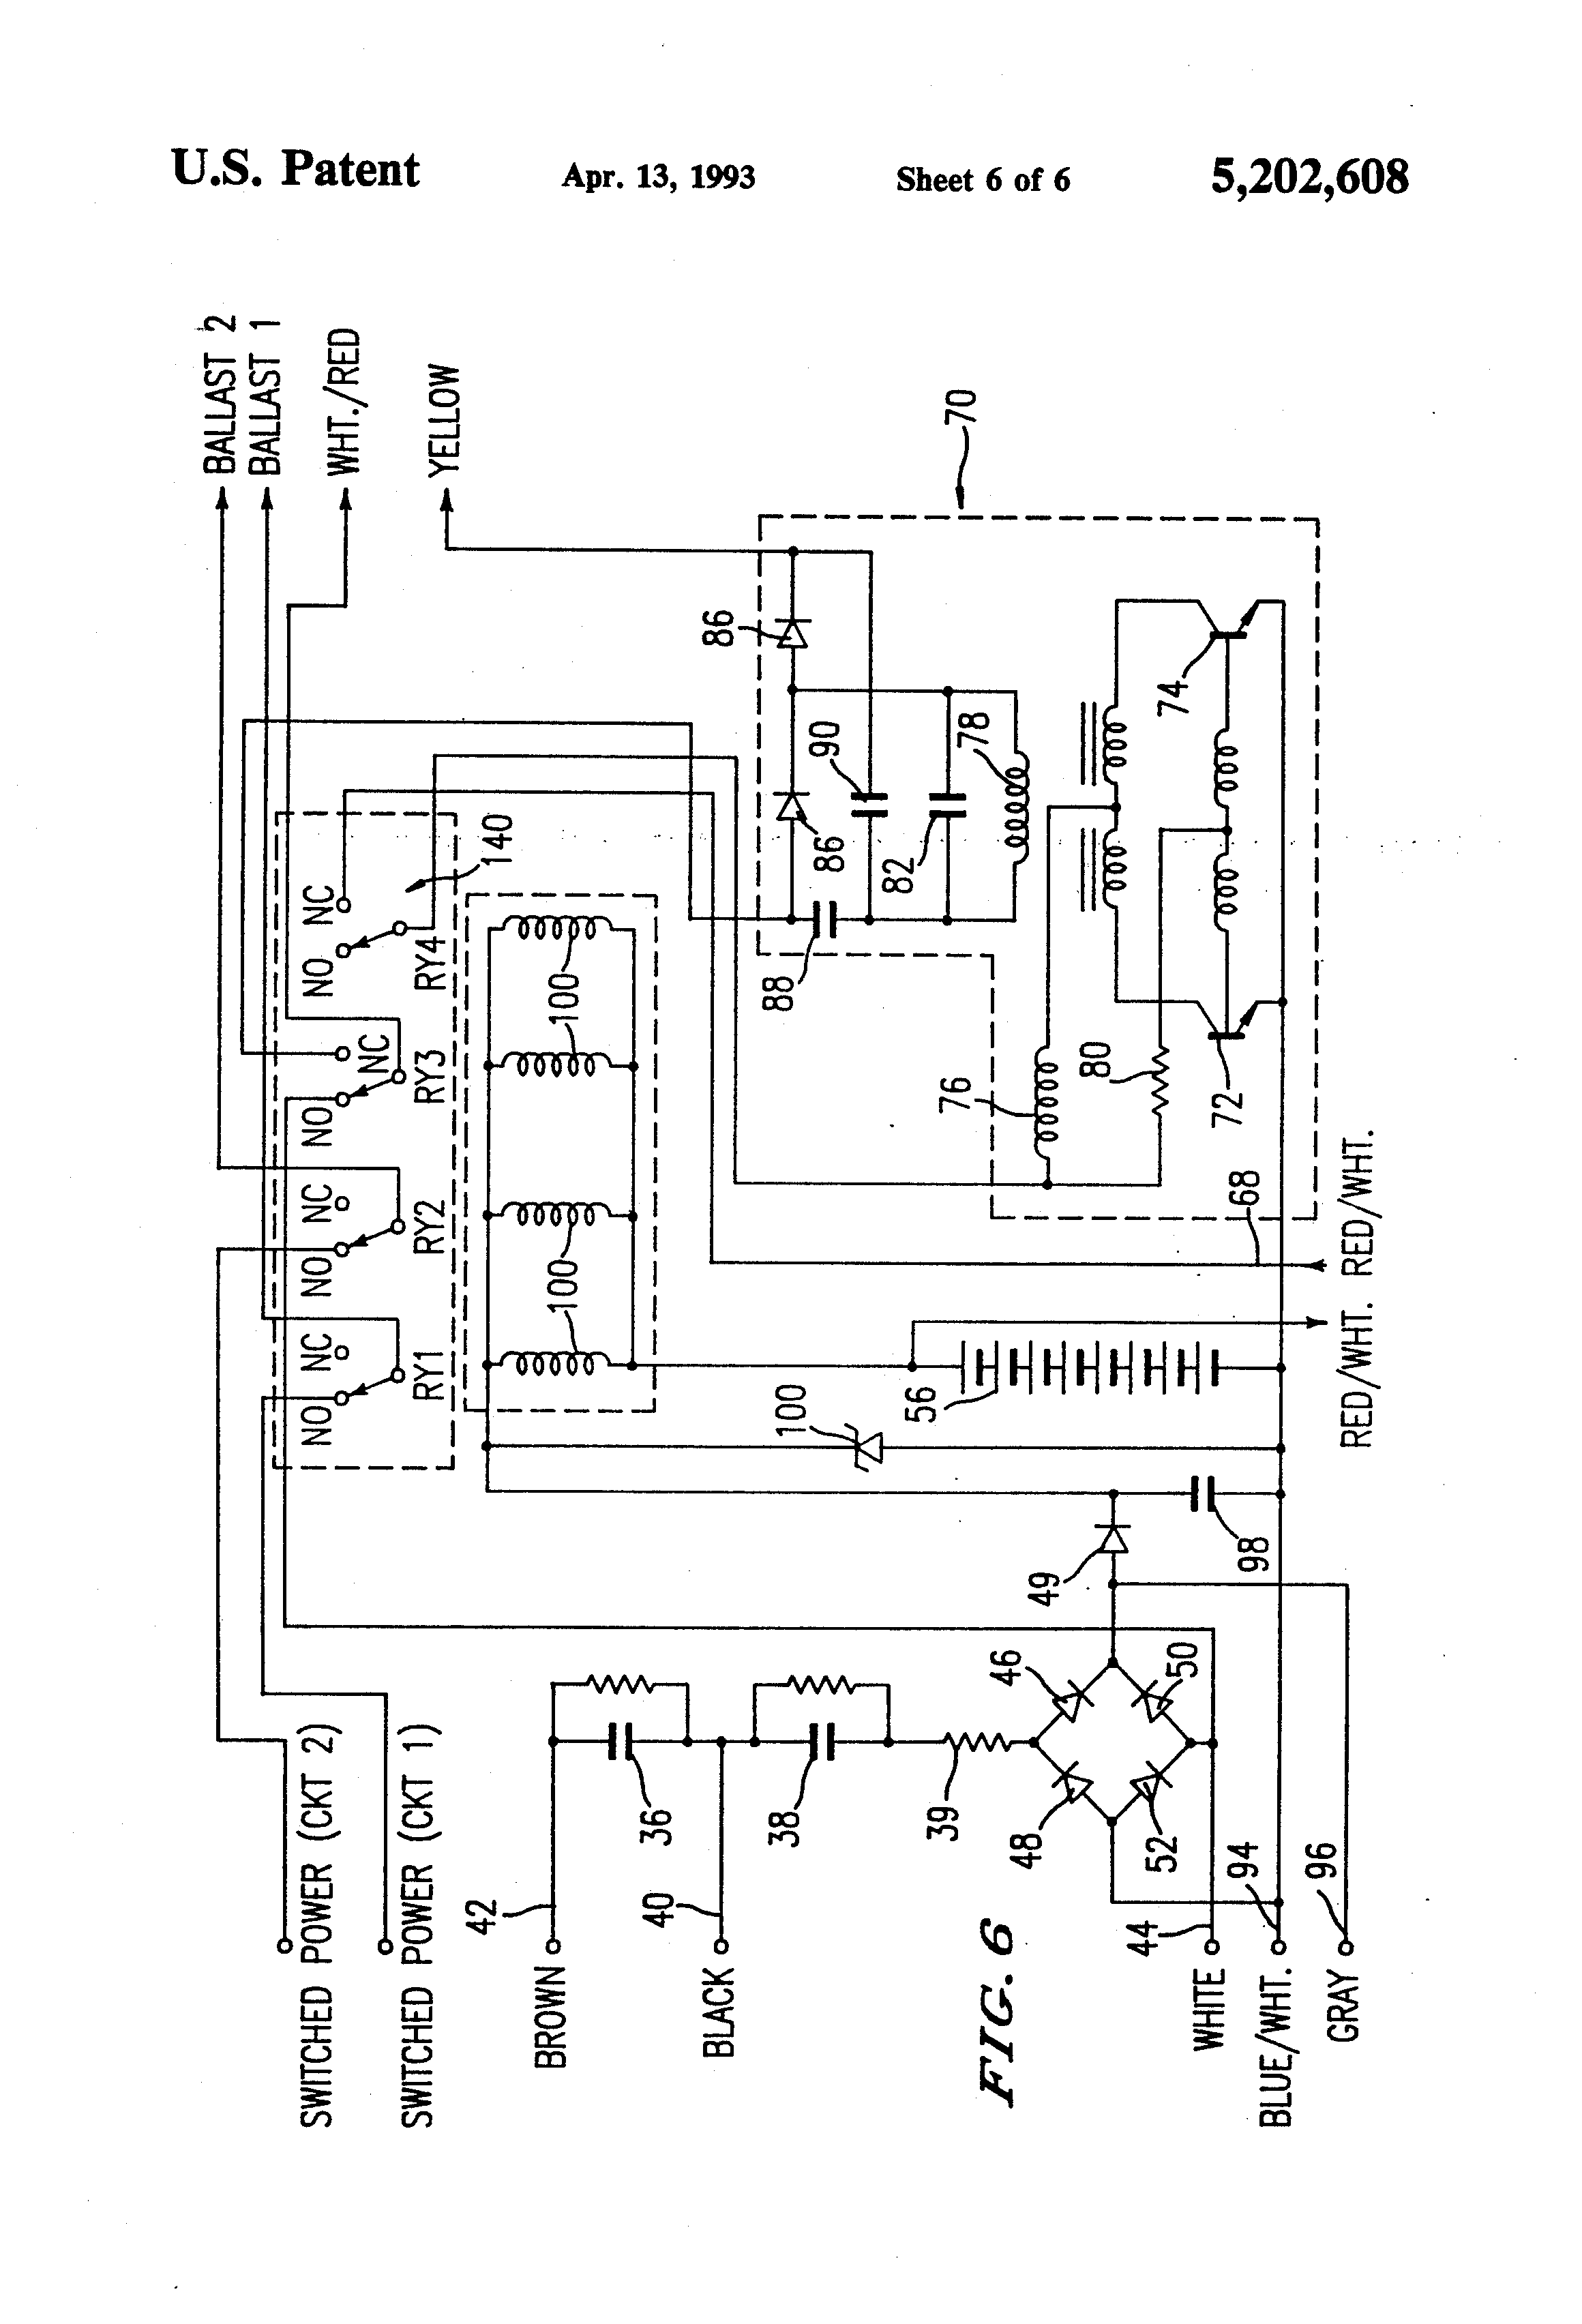 Bodine Emergency Ballast Wiring Diagram : 39 Wiring